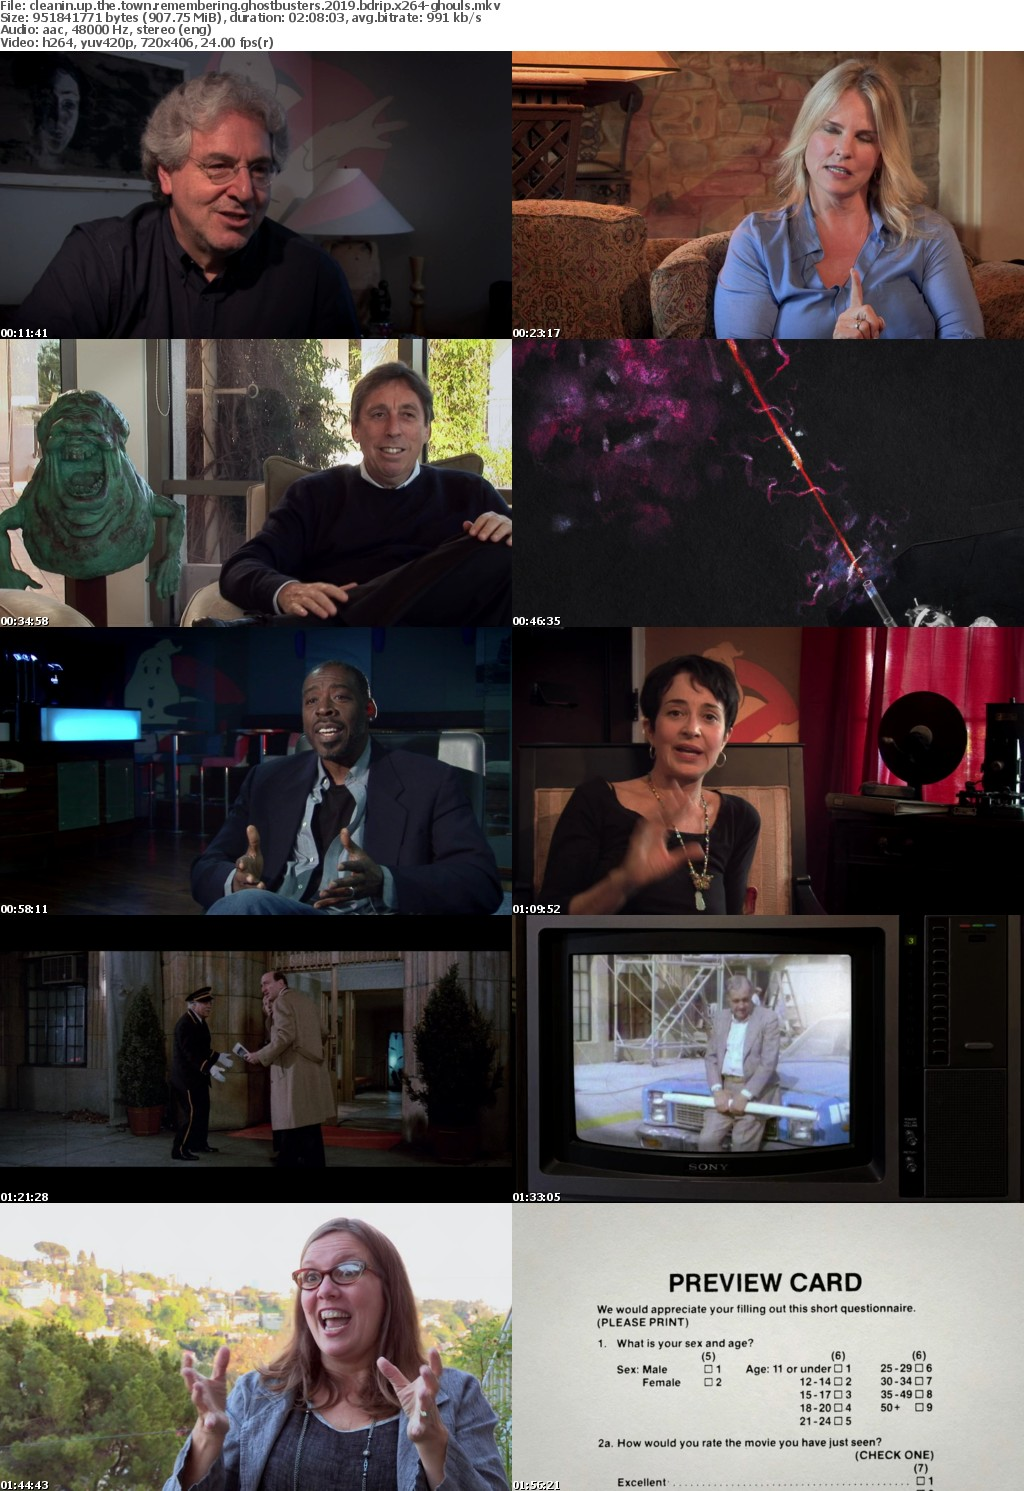 Cleanin Up the Town Remembering Ghostbusters 2019 BDRip x264-GHOULS